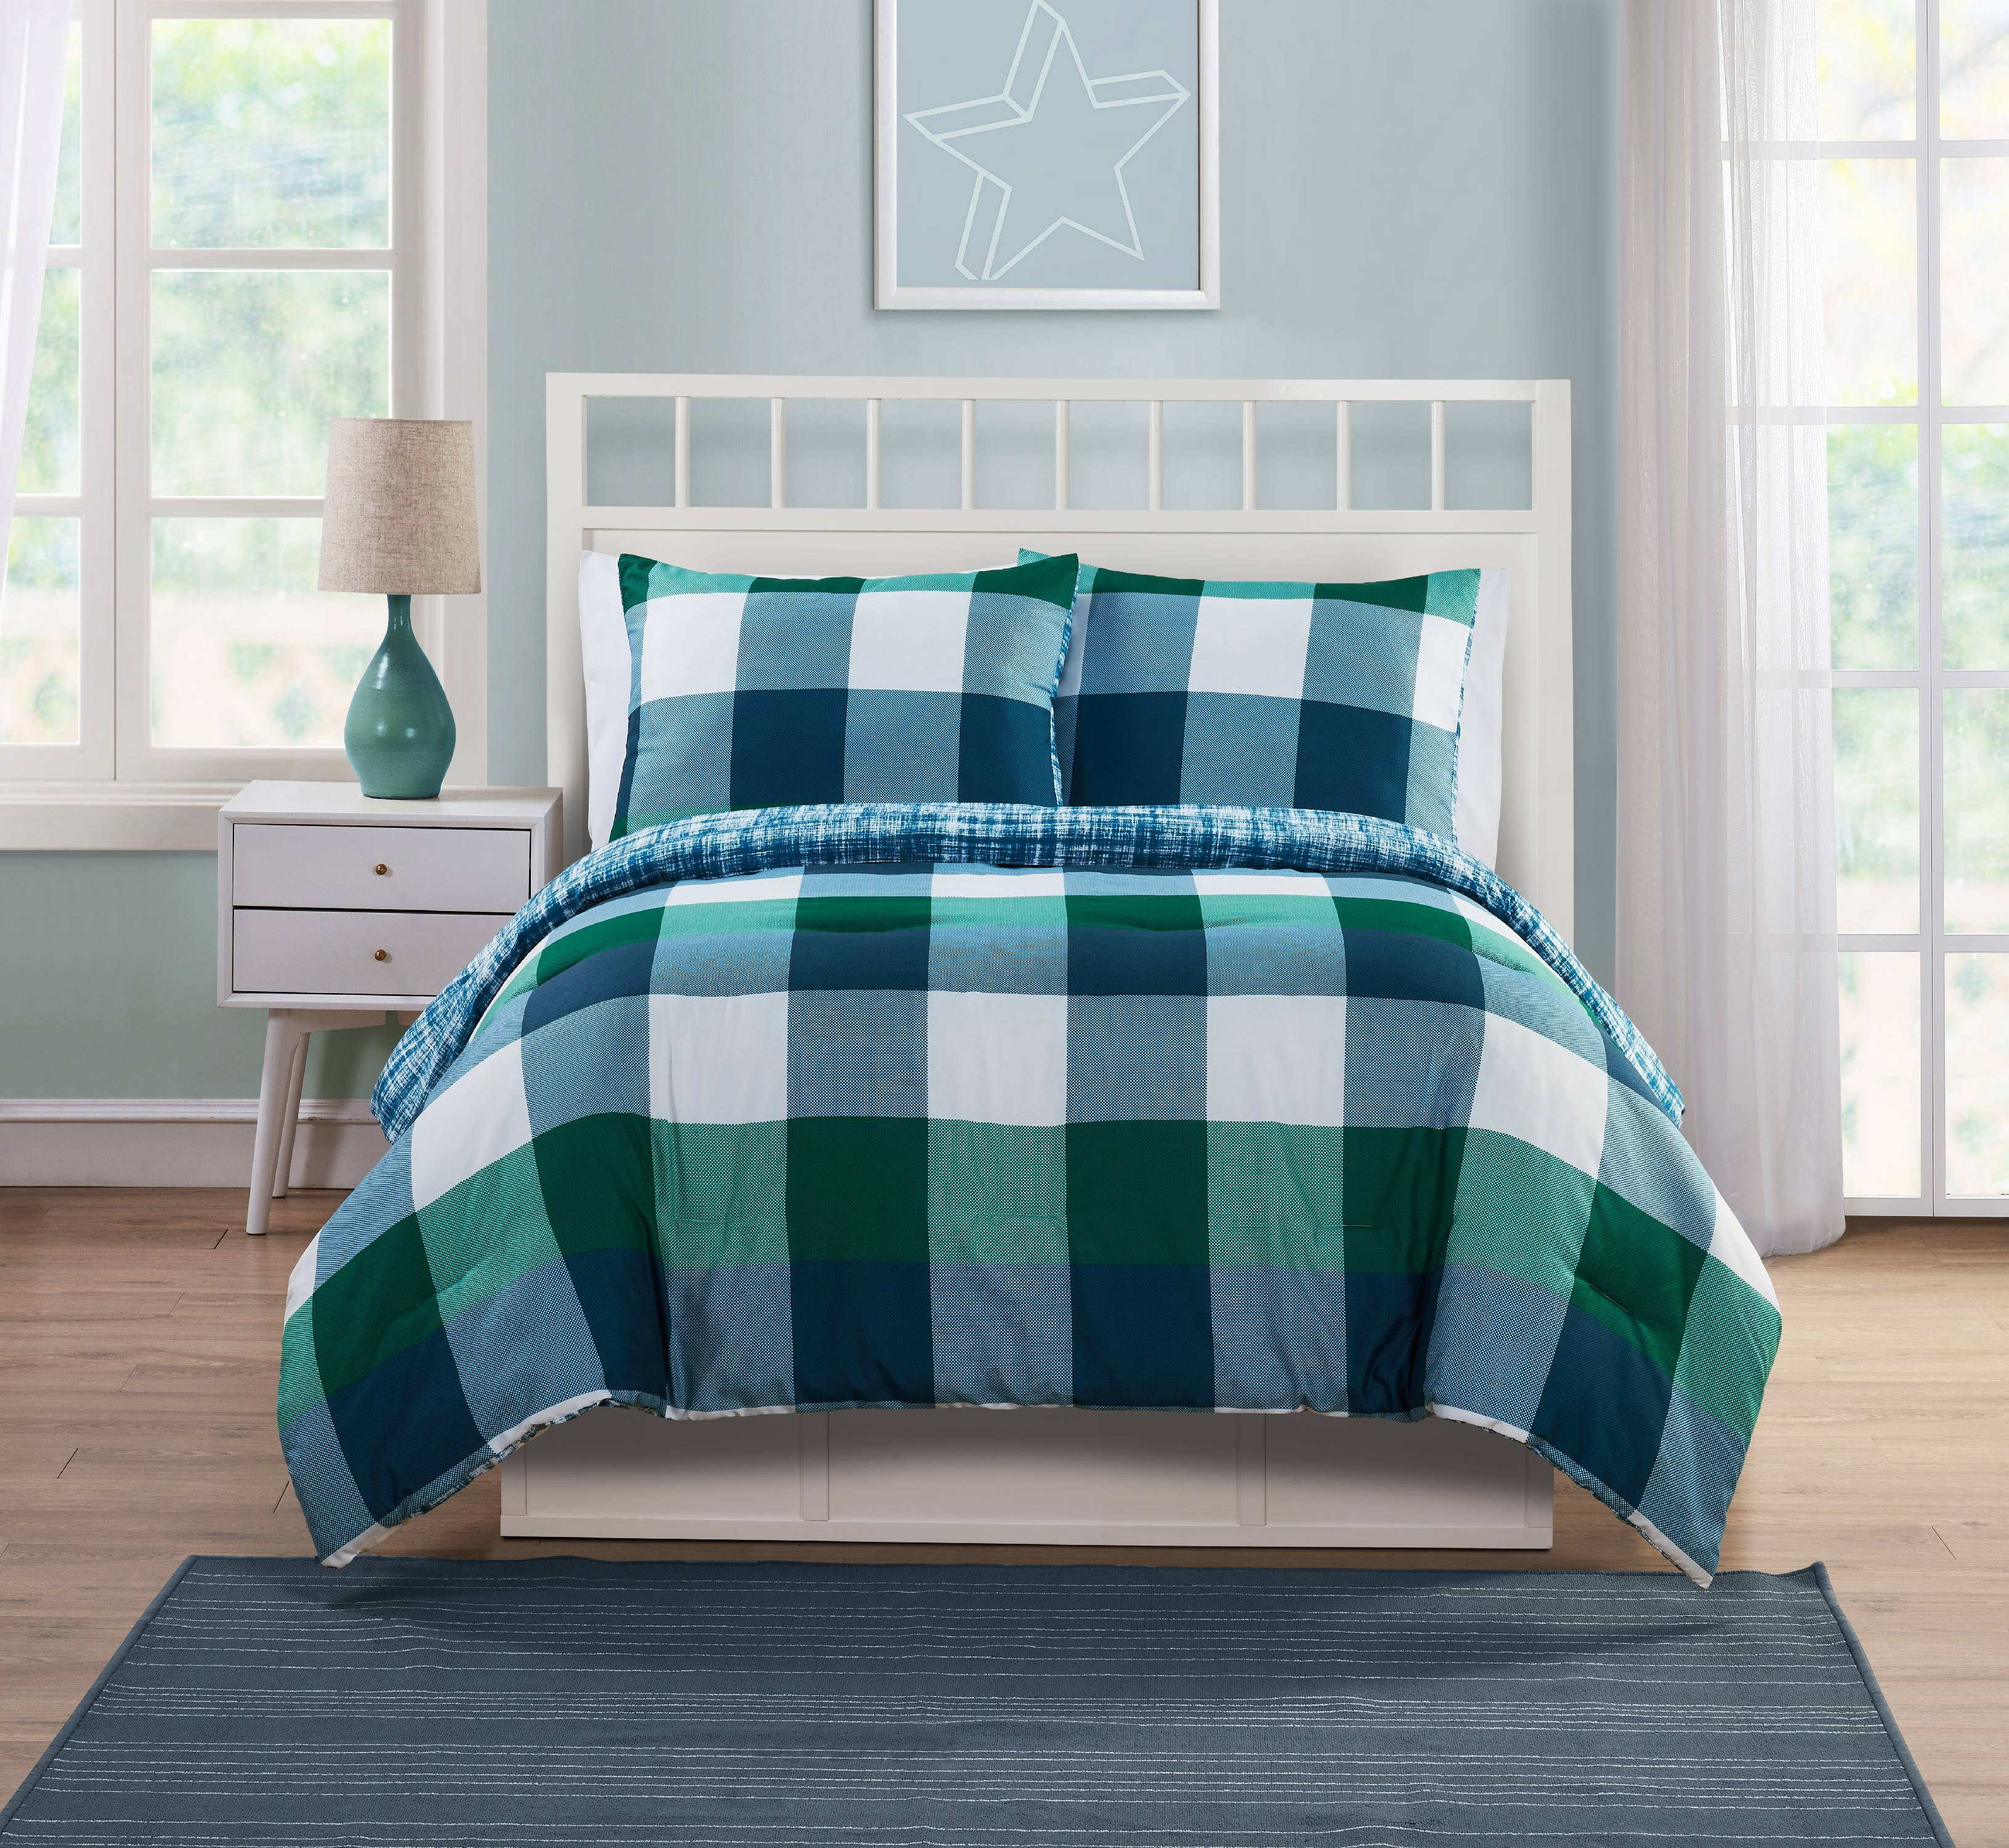 VCNY Home Quest Plaid Bedding Comforter Set